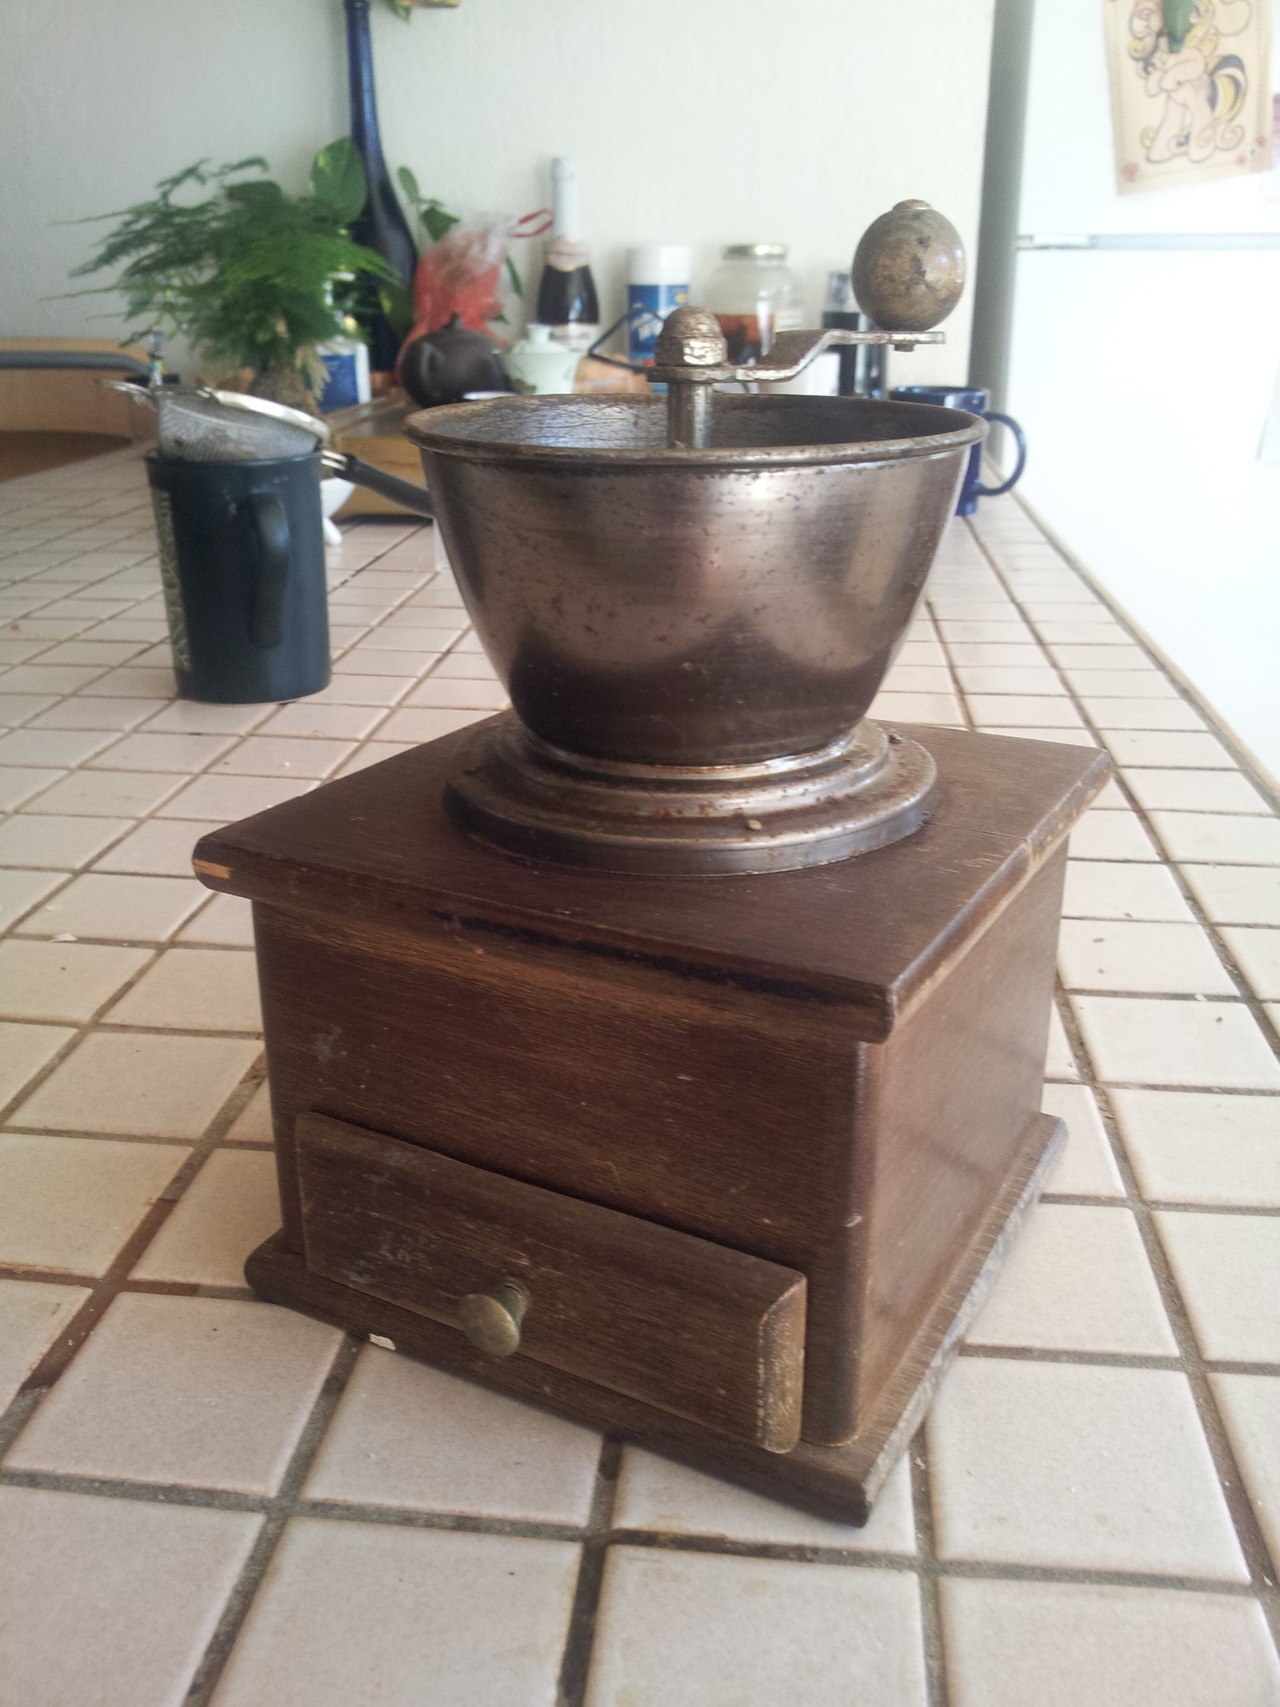 I'm pretty psyched about my new (actually really old) manual coffee grinder.